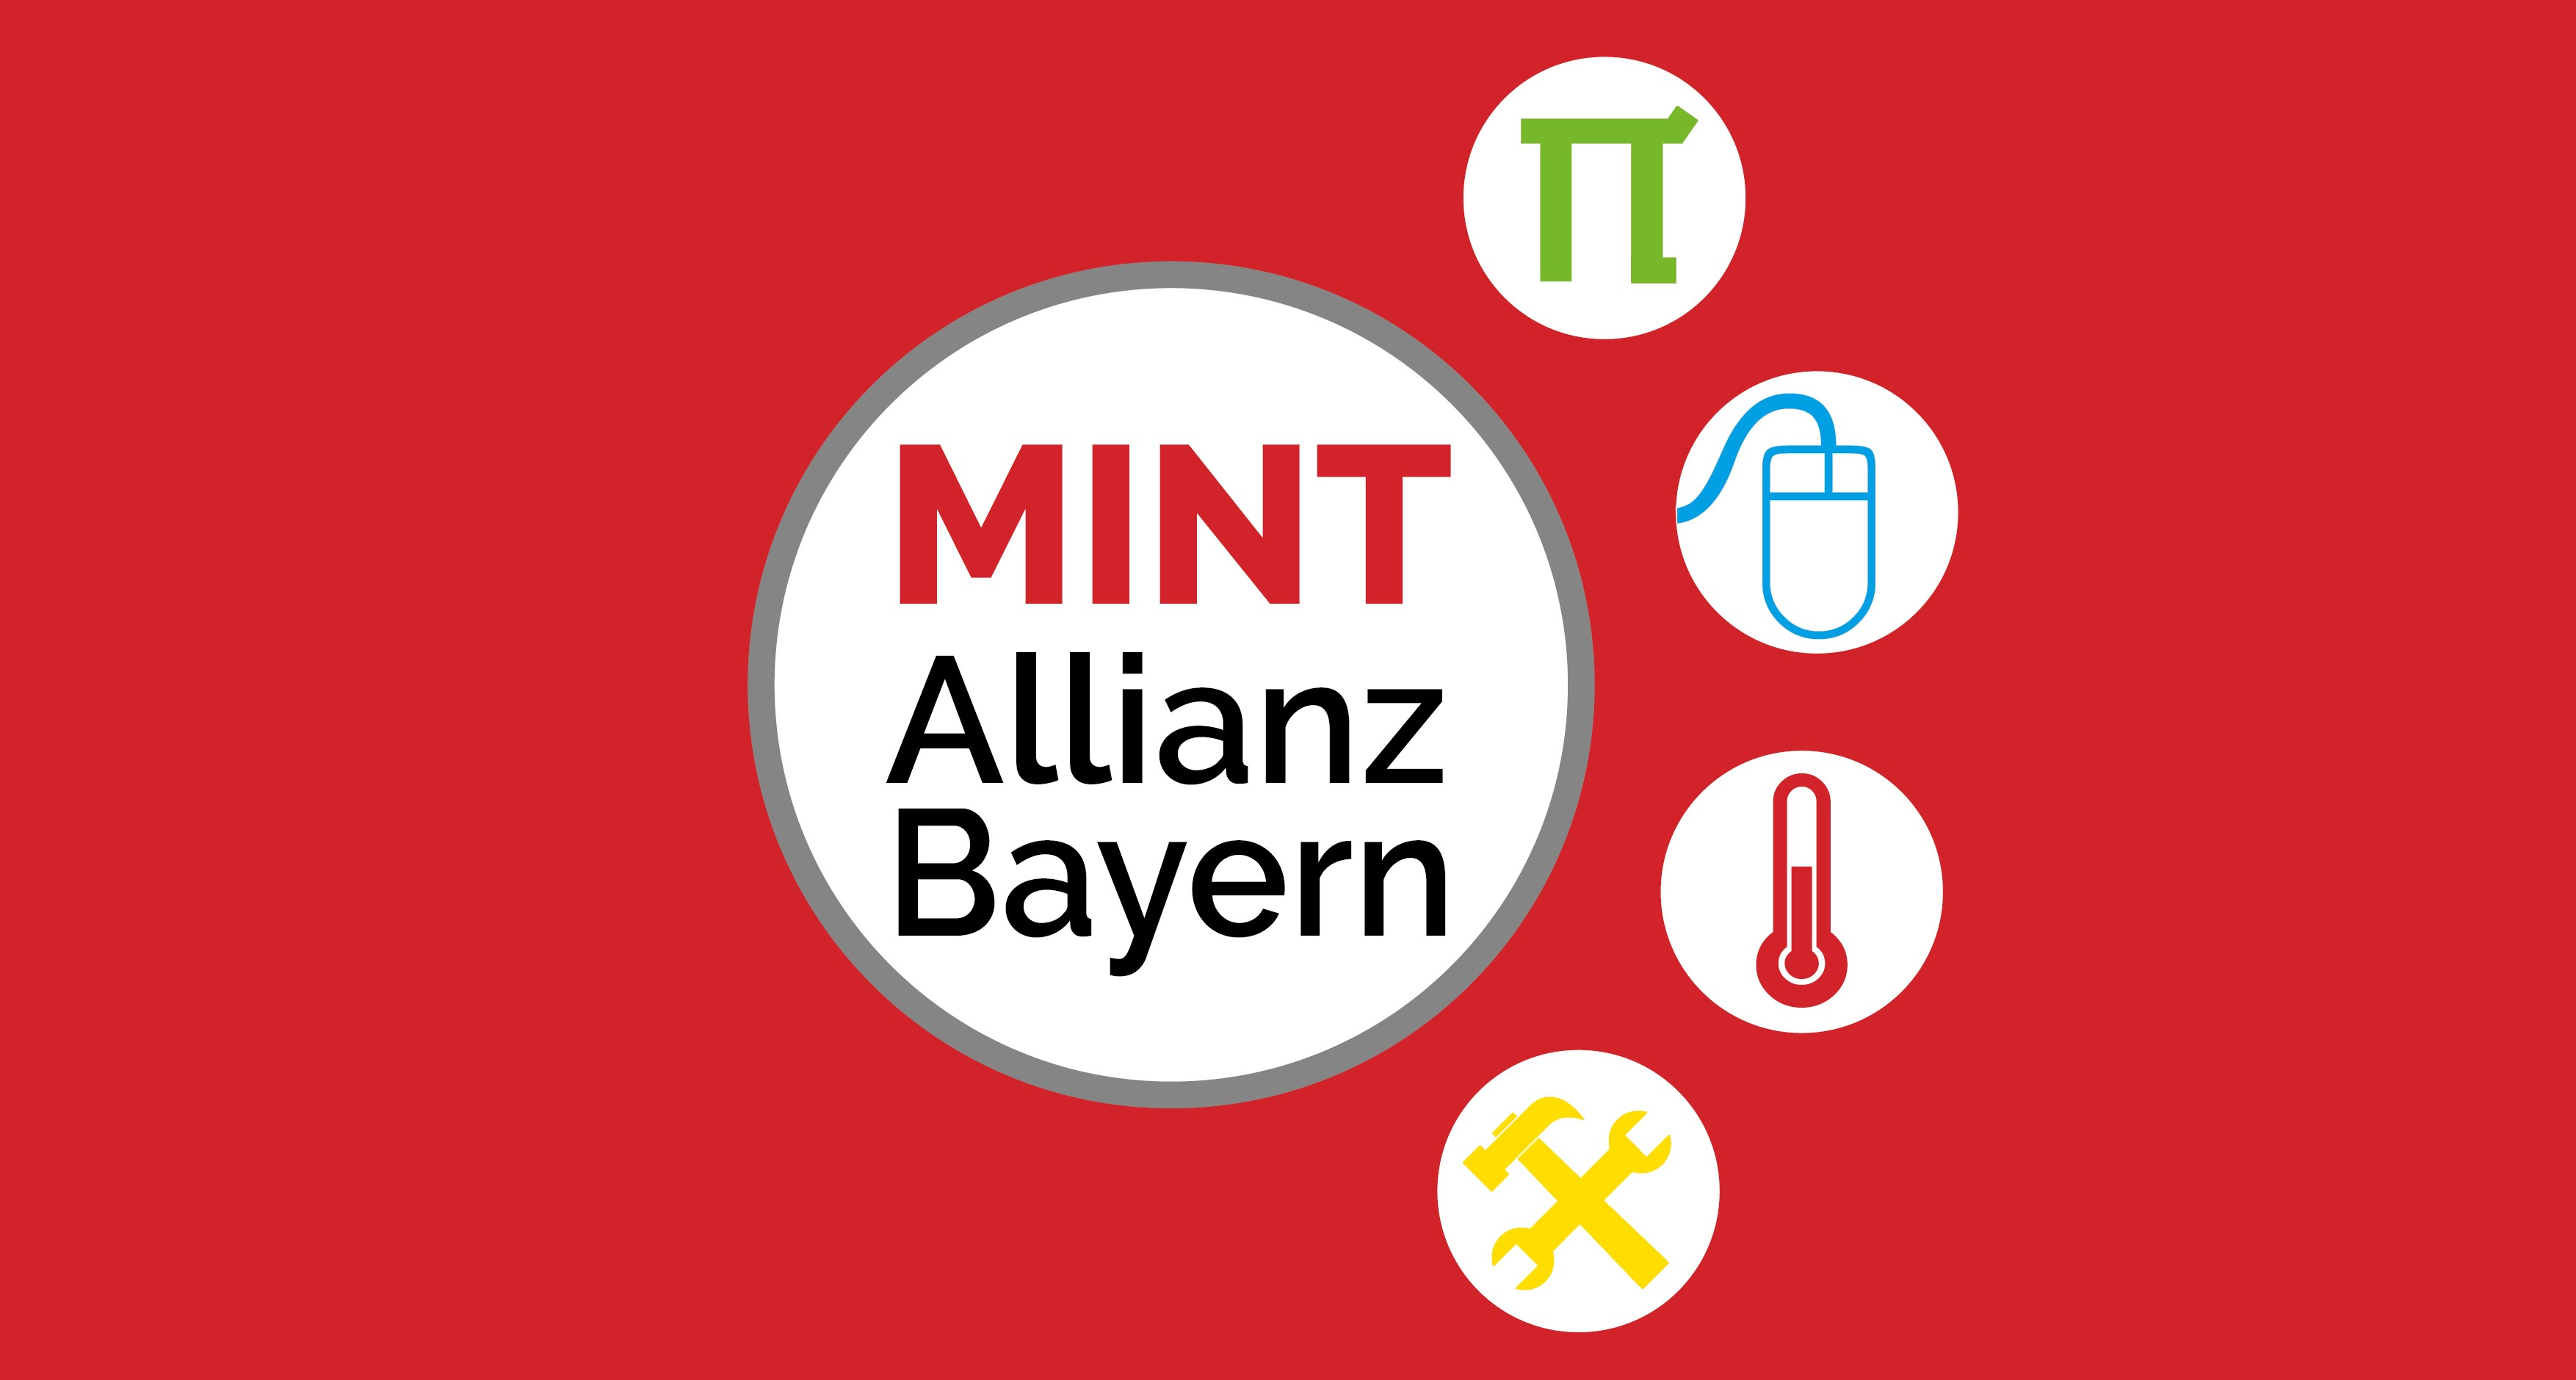 MINT Allianz